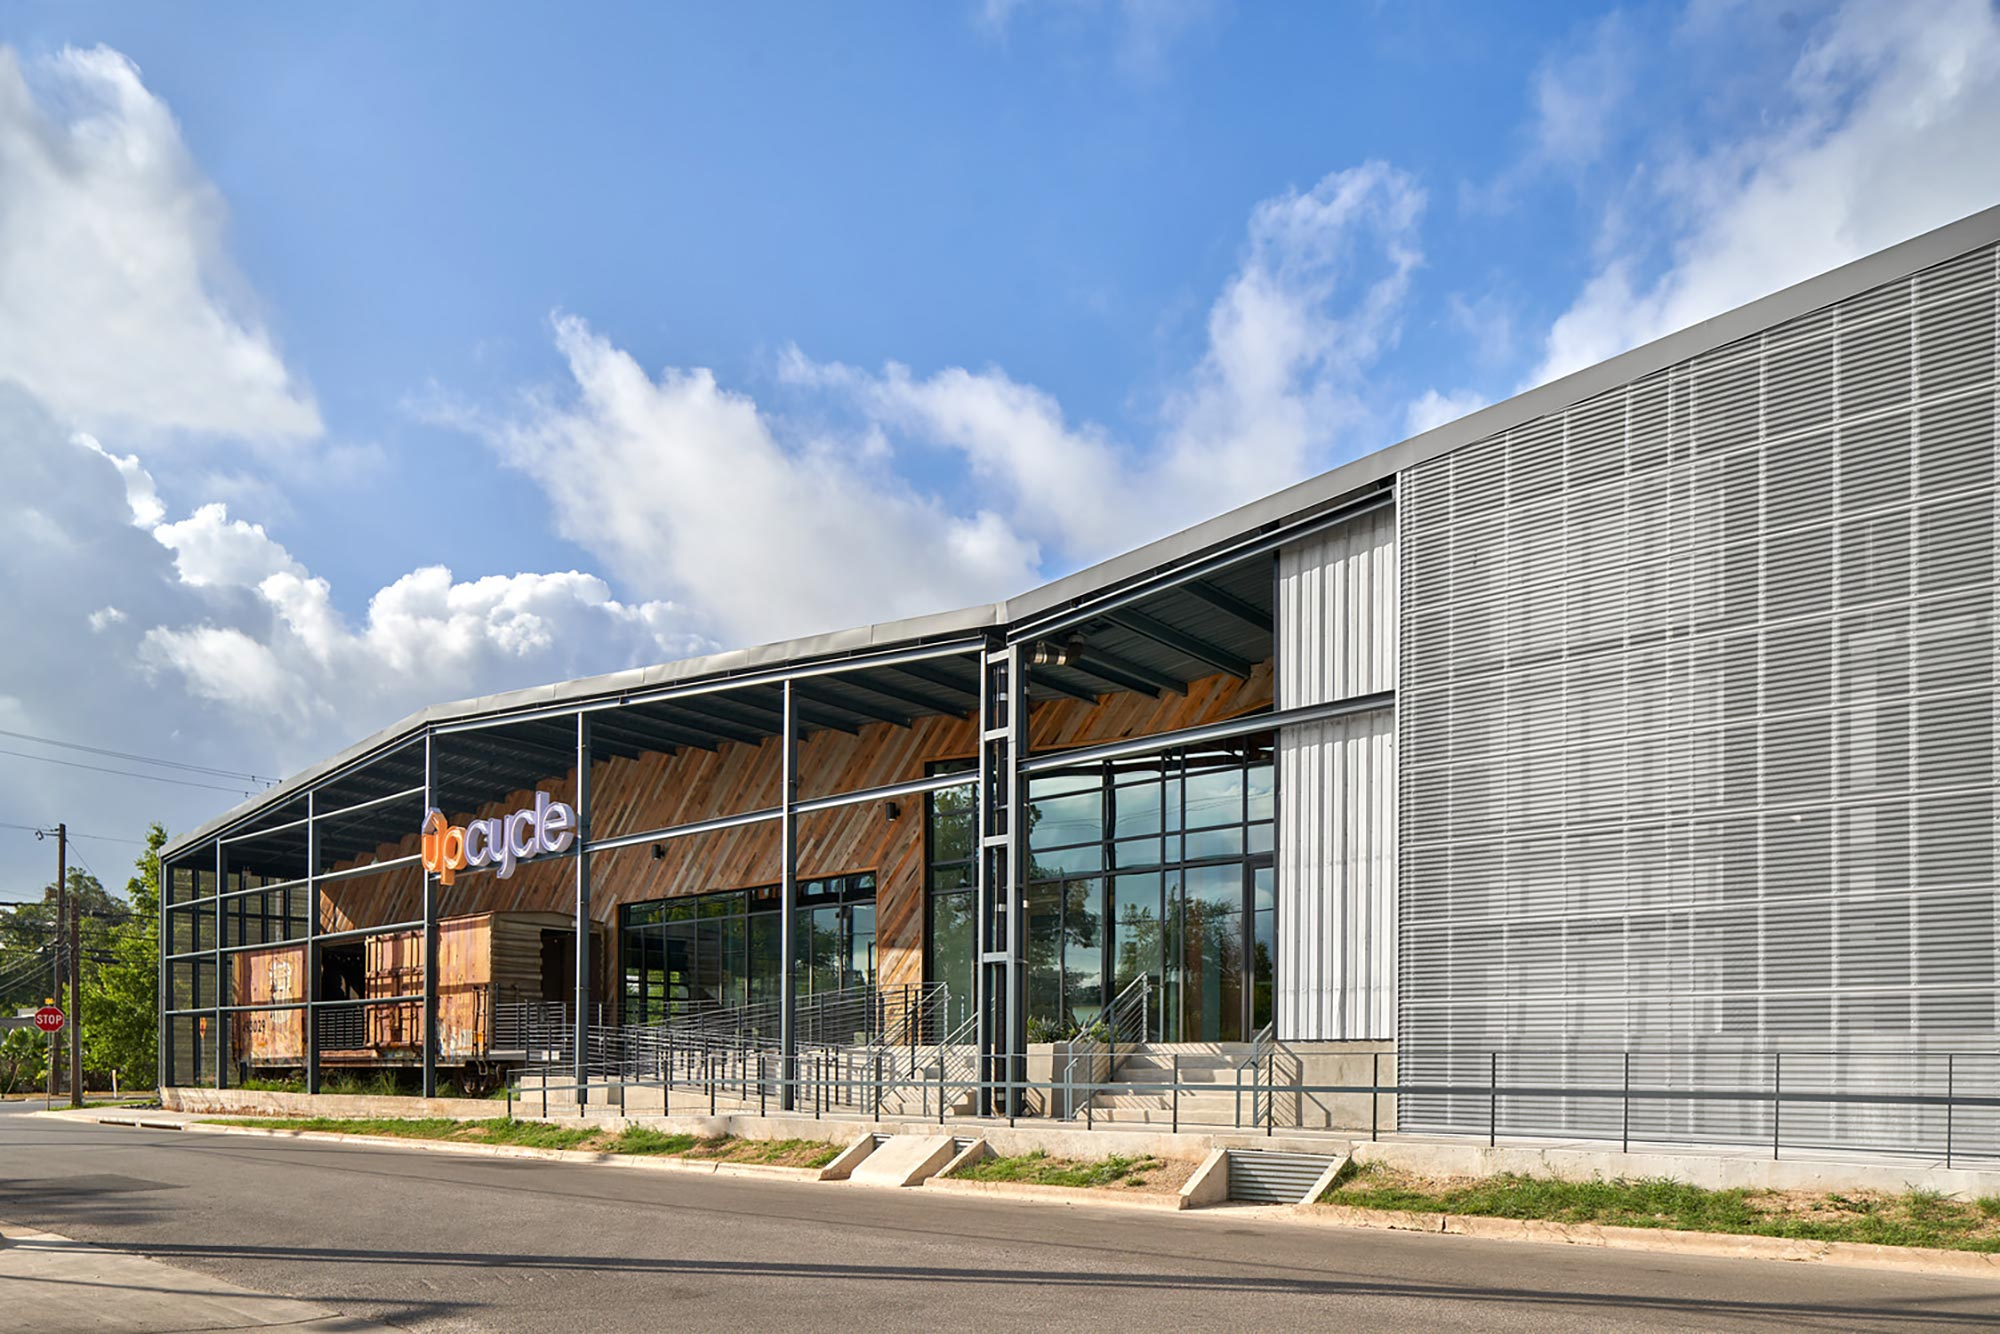 UPCycle: In the heart of Austin's East Side, Gensler converted an old warehouse into creative offices that create a vibrant connection with the neighborhood and add character.